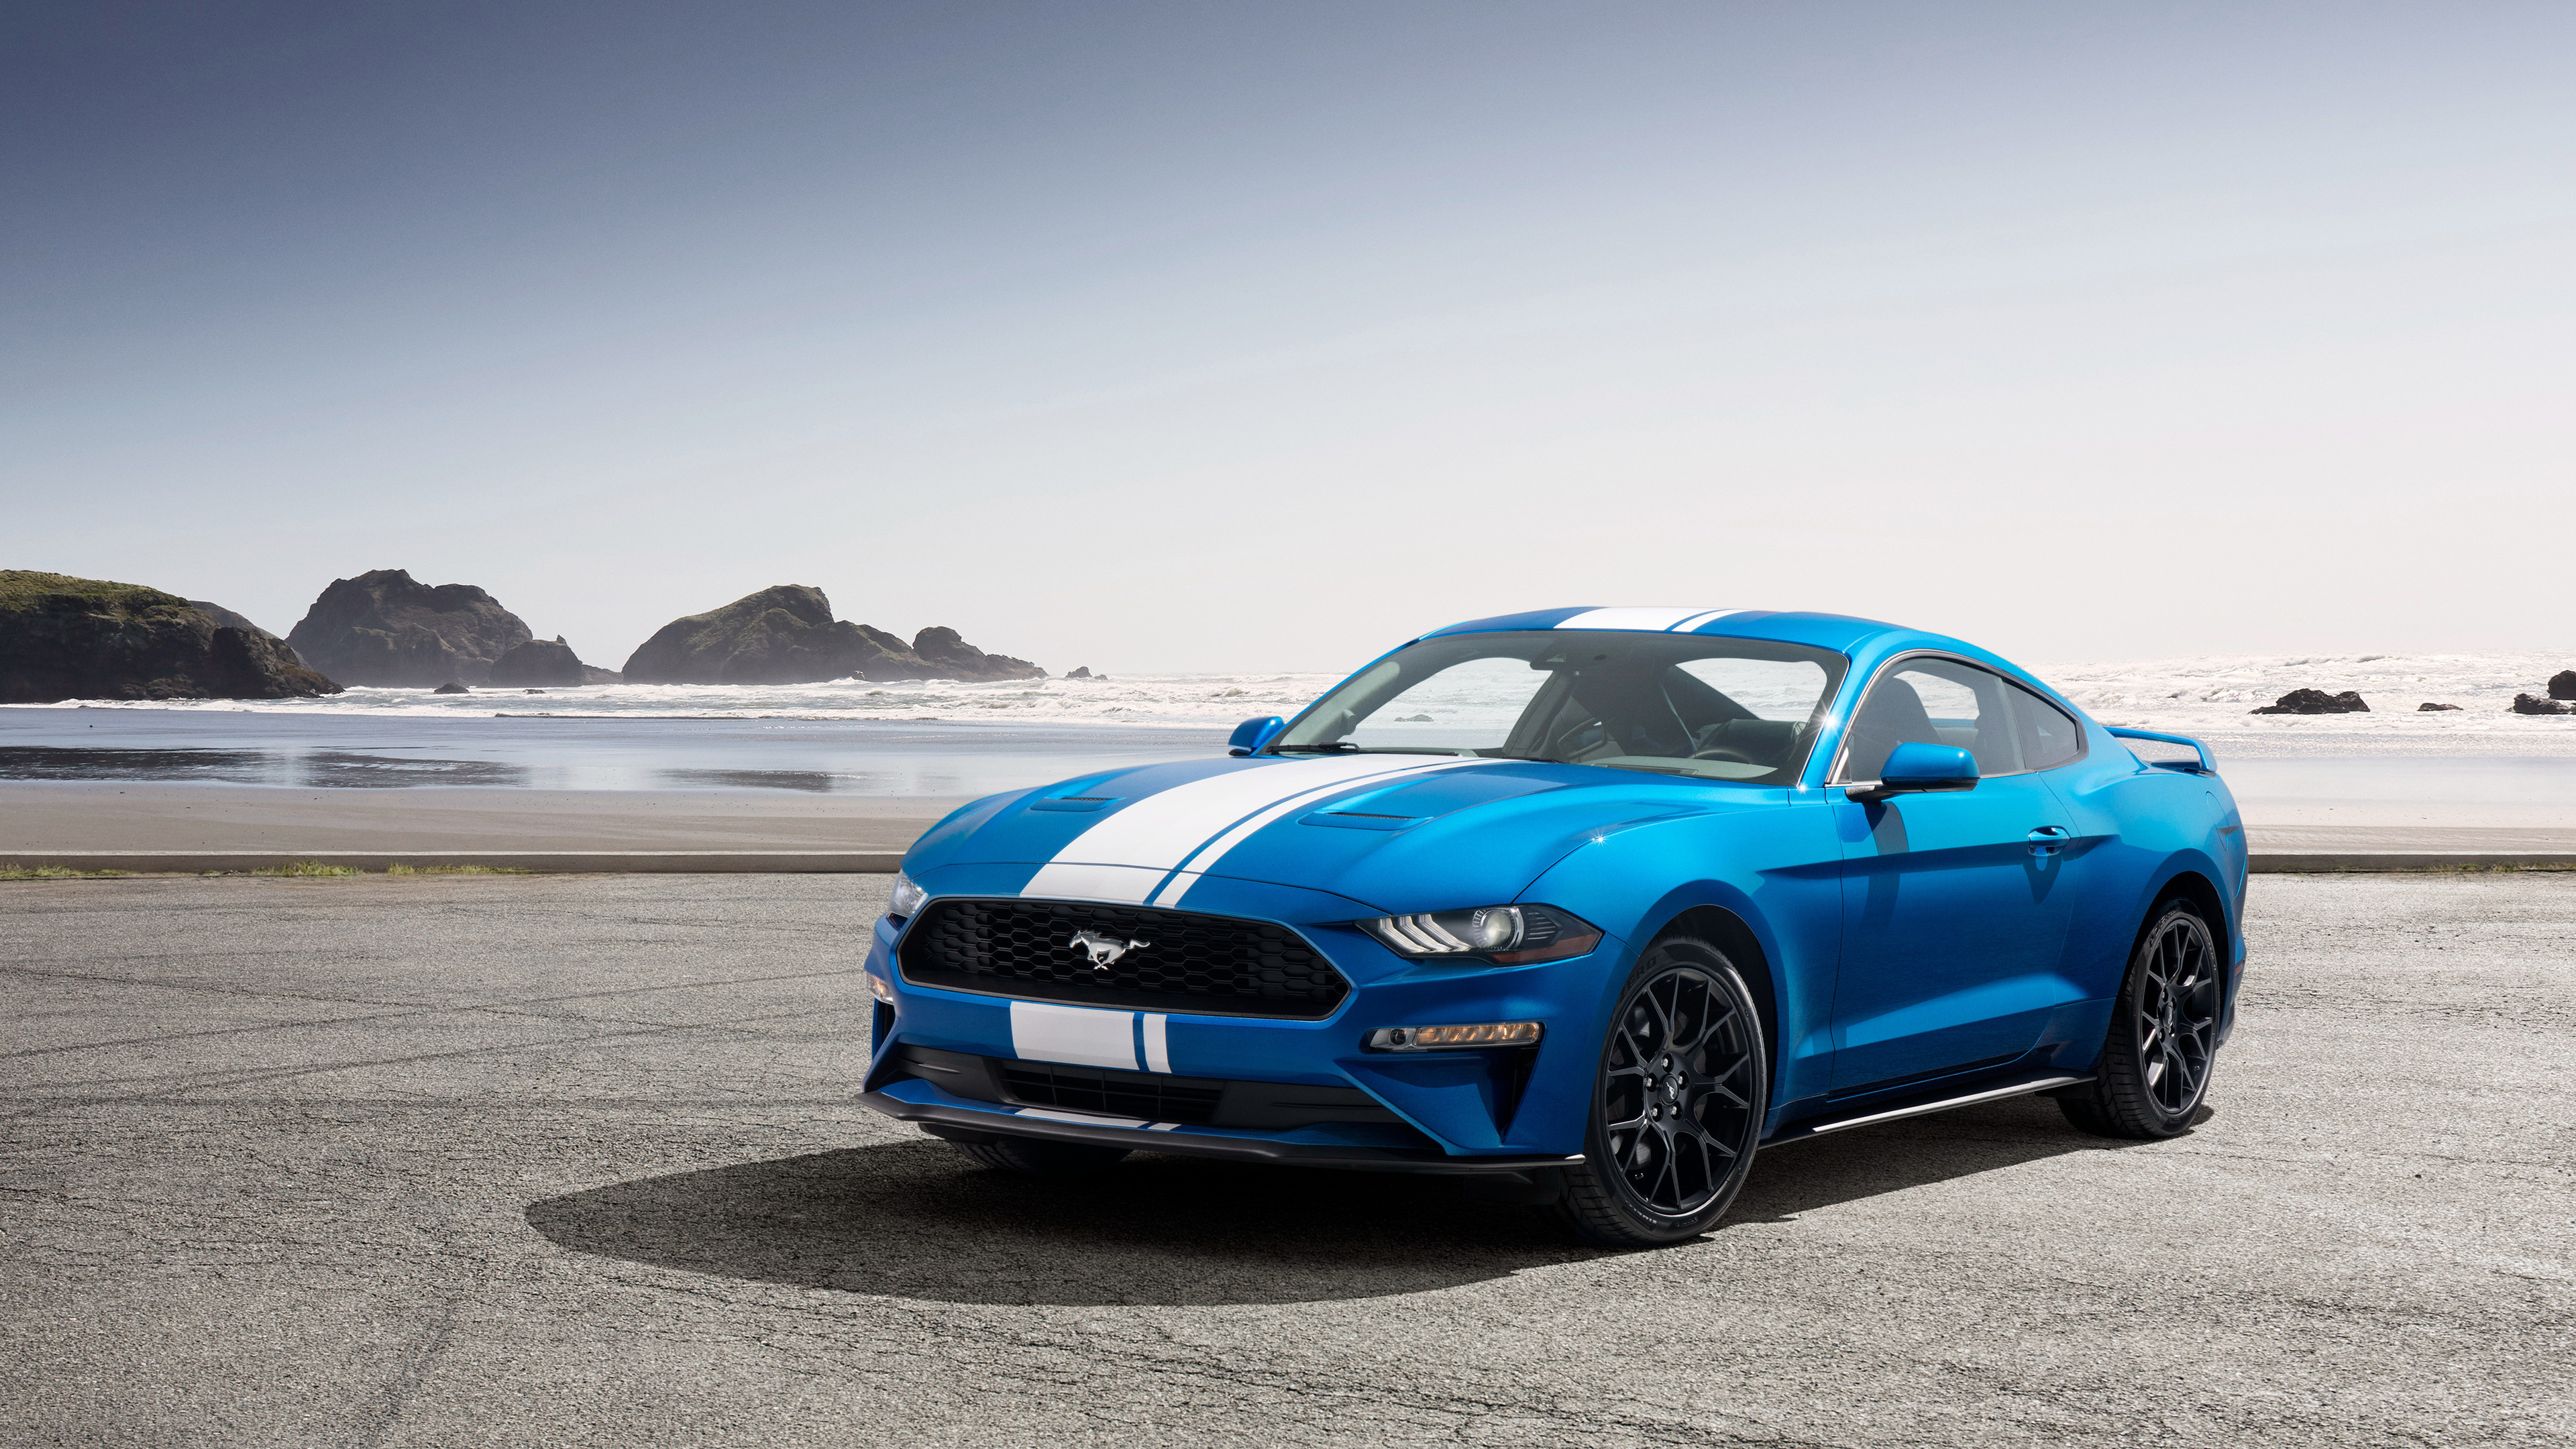 ford mustang ecoboost performance pack 1 2018 1539110880 - Ford Mustang EcoBoost Performance Pack 1 2018 - mustang wallpapers, hd-wallpapers, ford wallpapers, ford mustang wallpapers, 4k-wallpapers, 2018 cars wallpapers